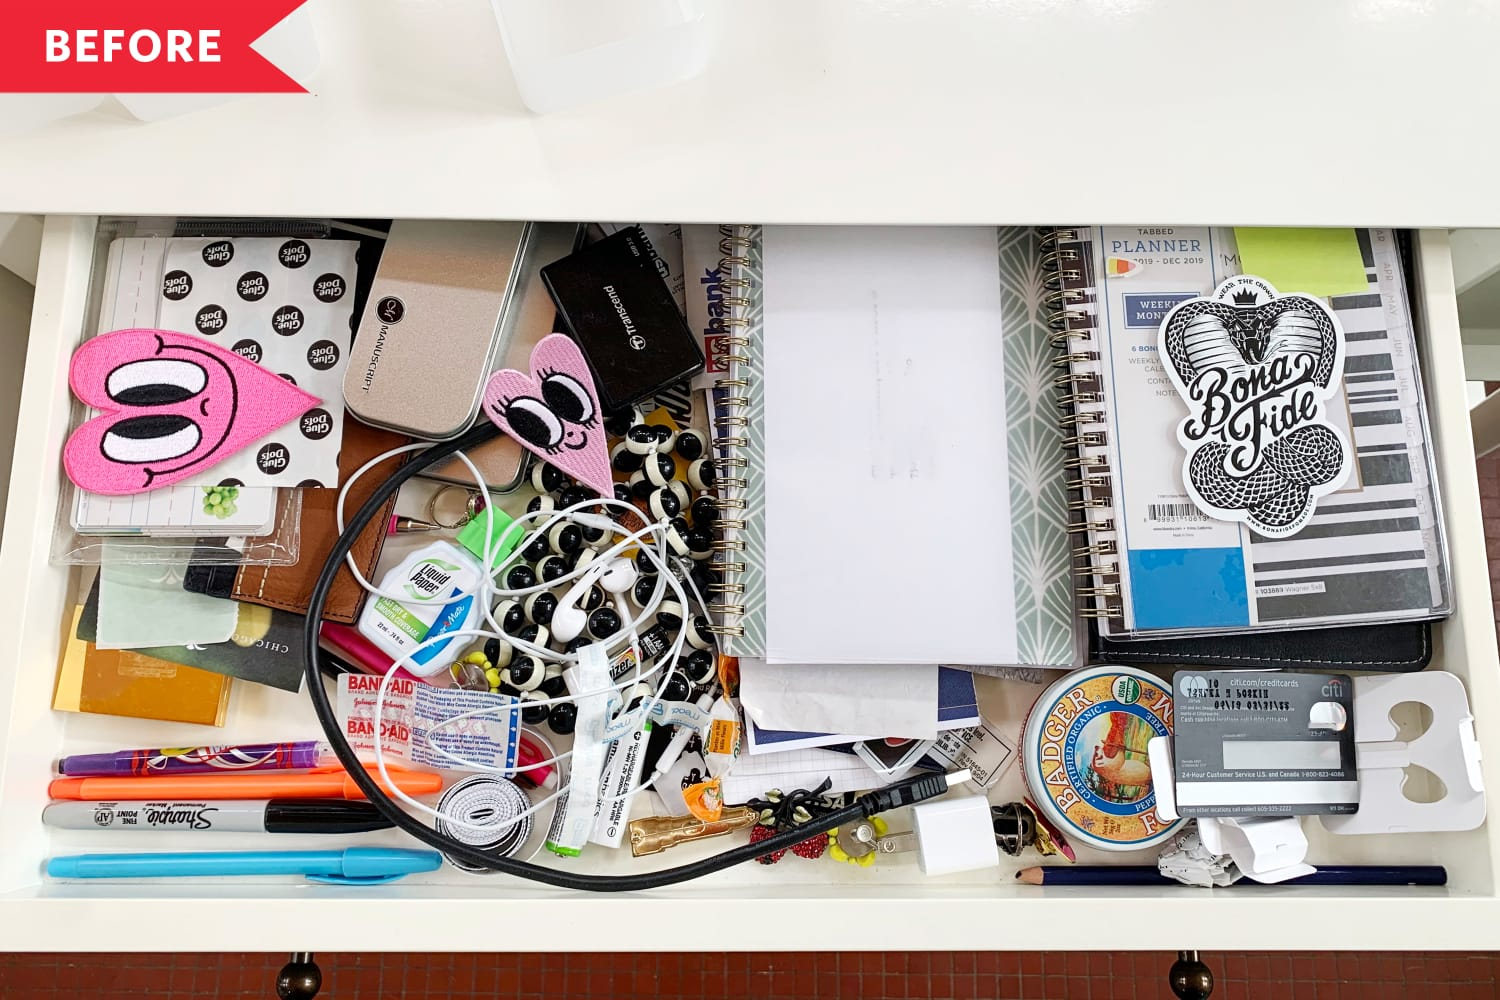 Before and After: 3 Messy Drawers Get a Makeover With $1 Trays from Target